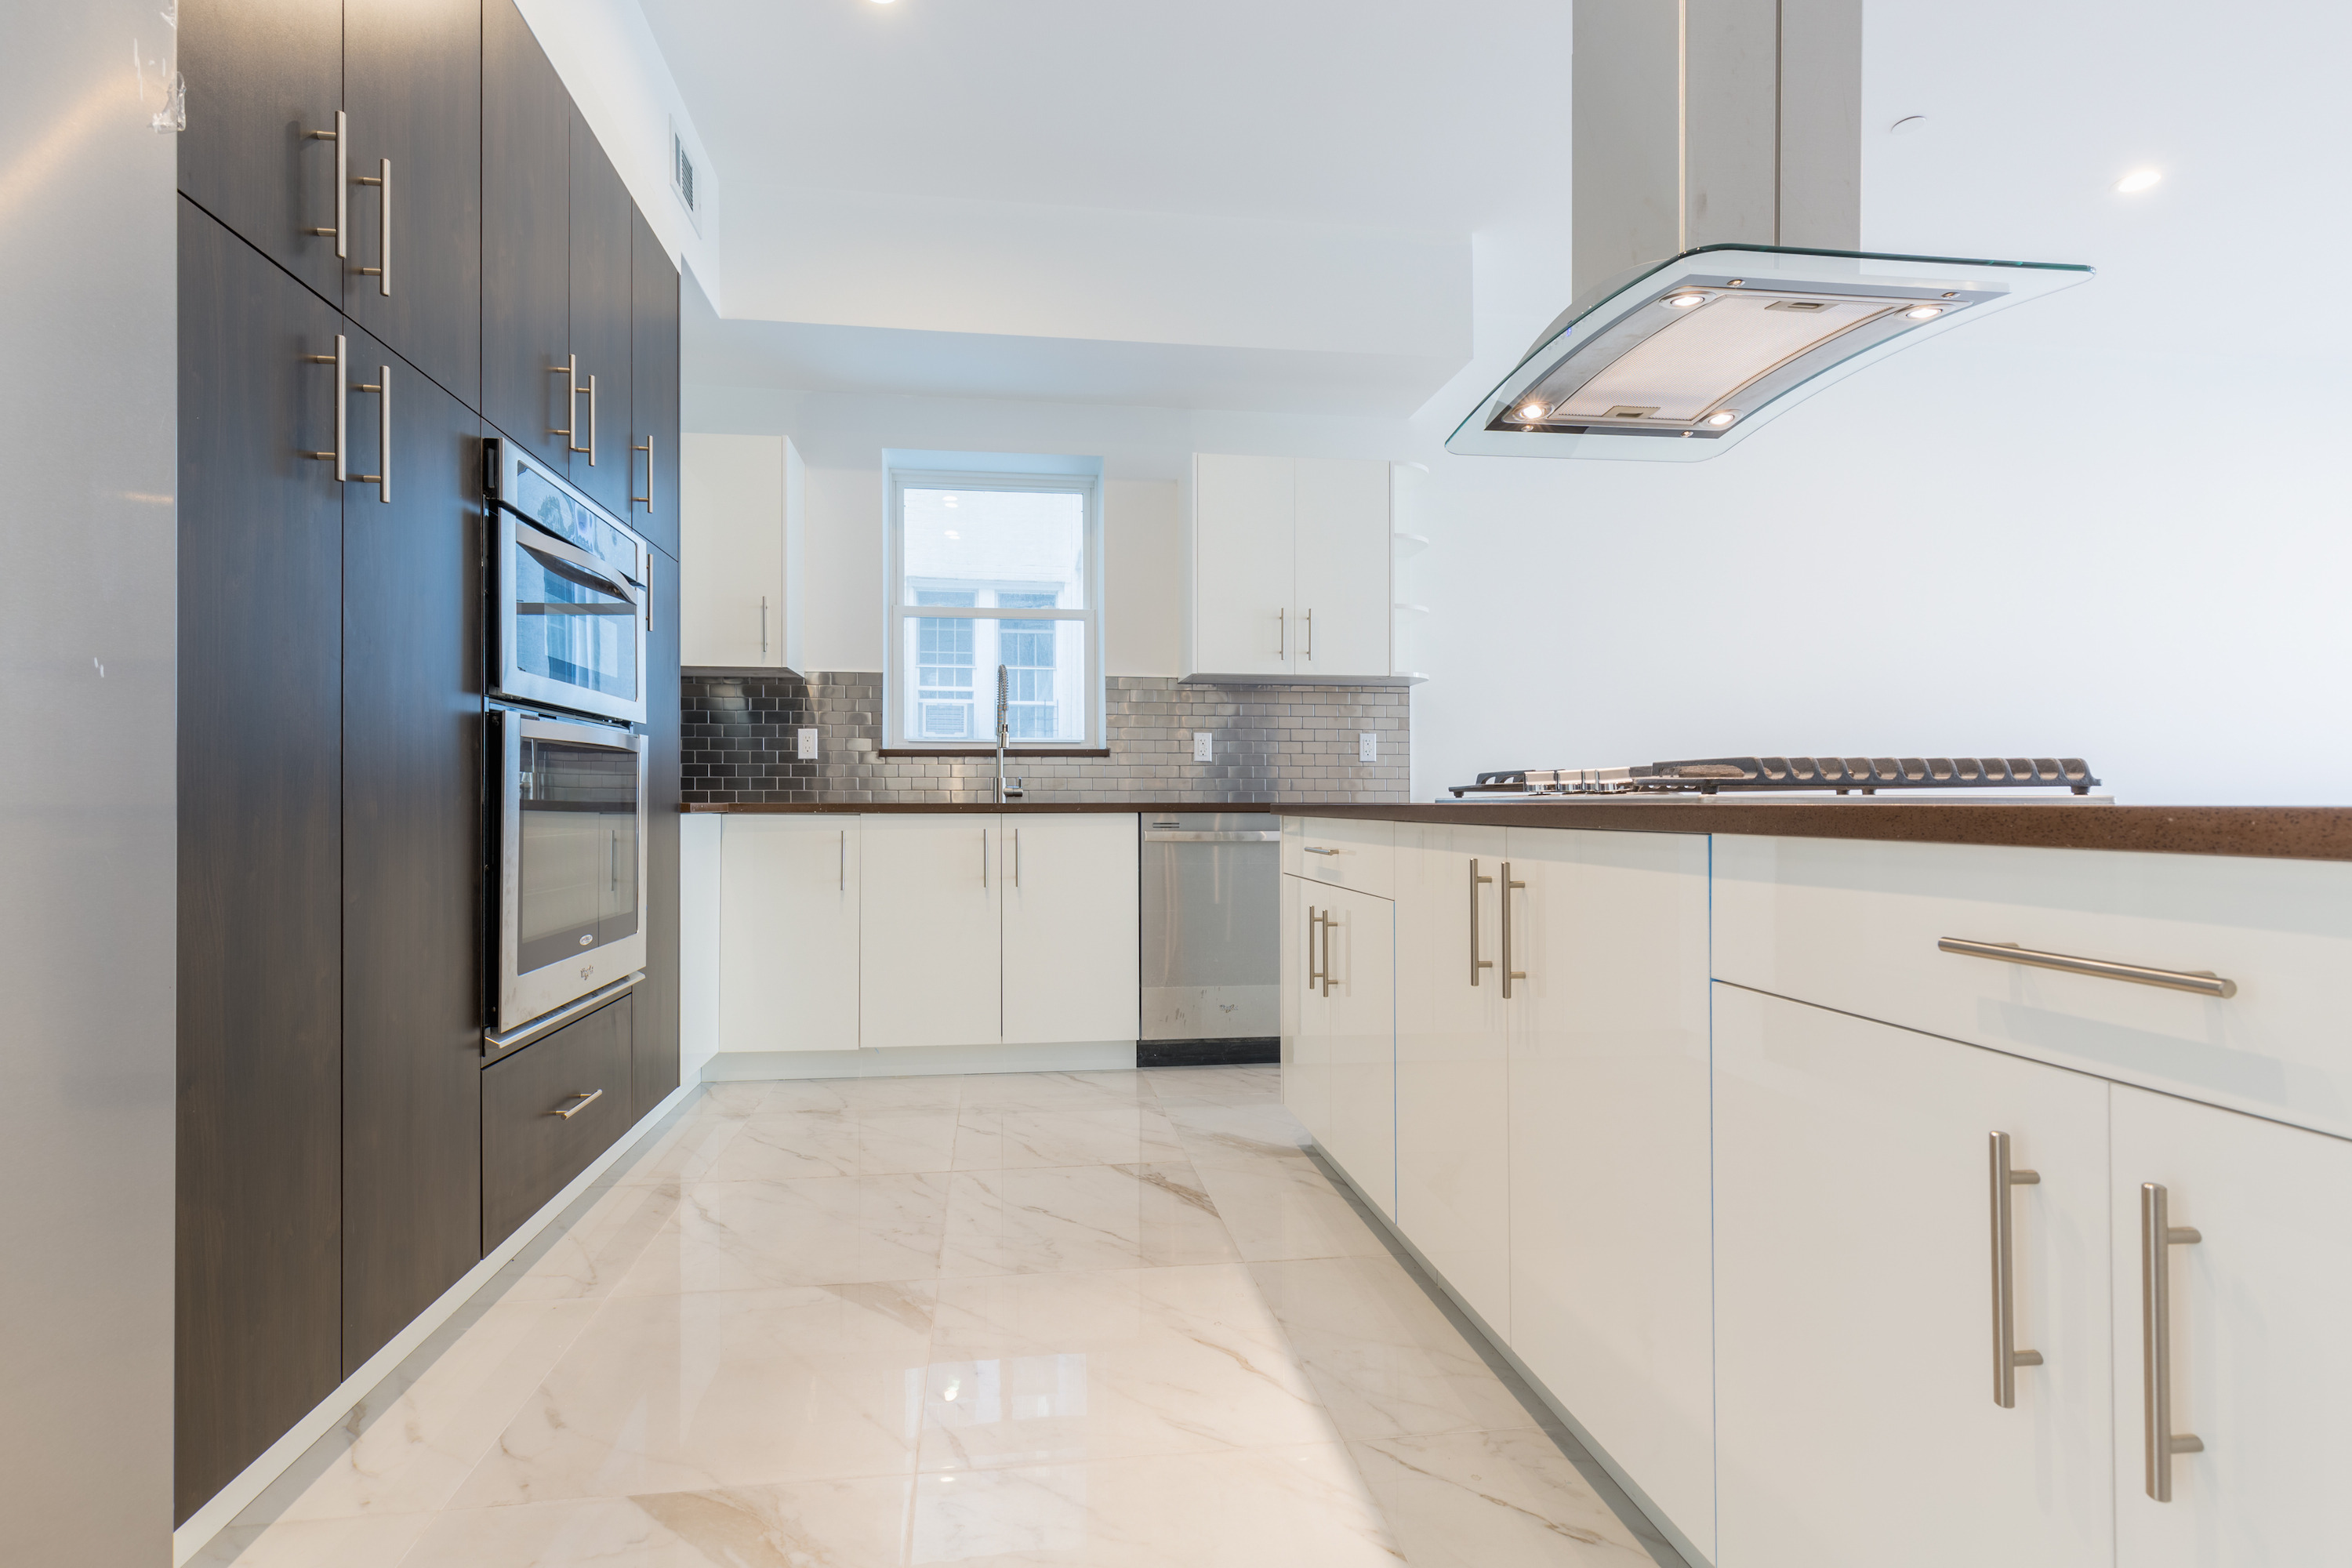 Kitchen cabinets 3rd ave brooklyn - Brooklyn Defalco Realty 2271 Ocean Ave Brooklyn Defalco Realty